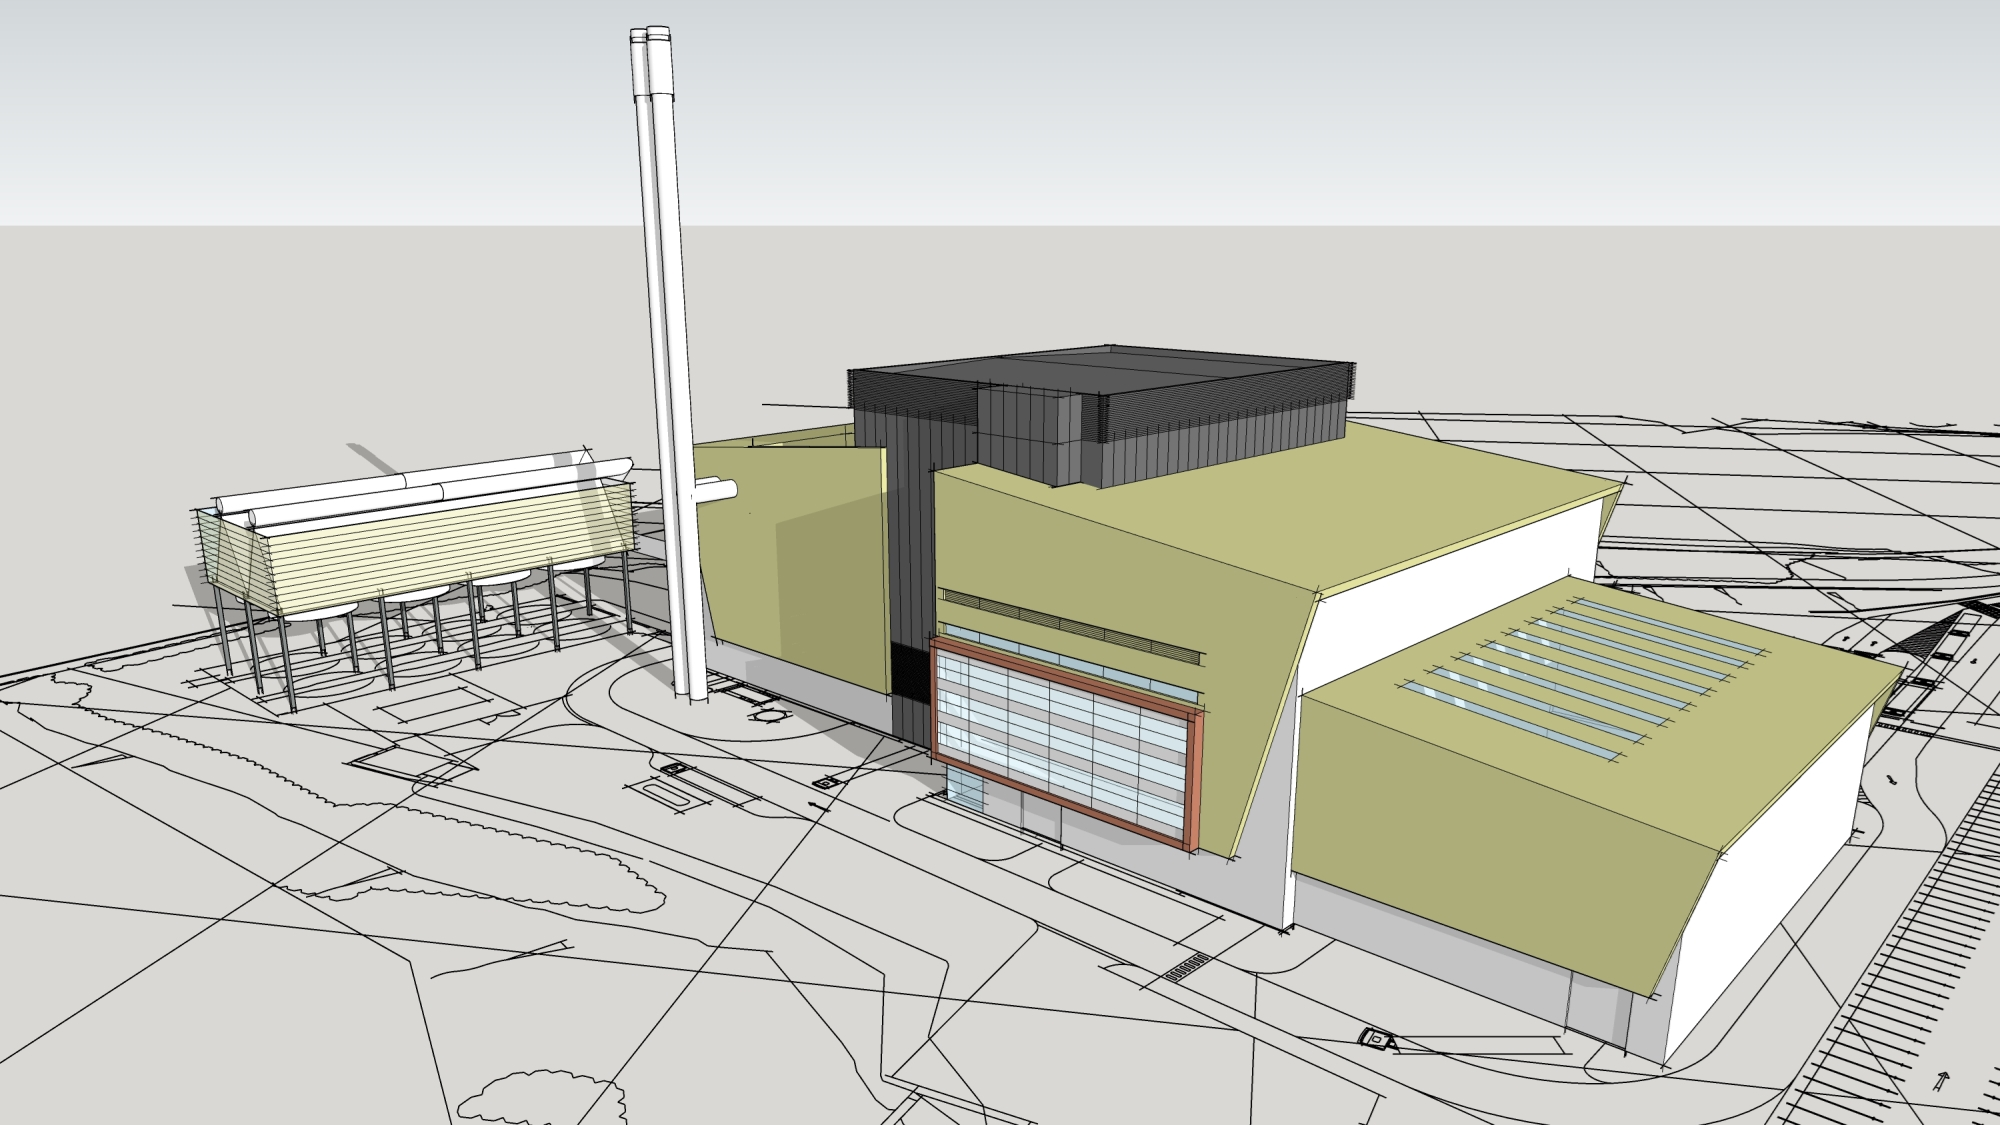 Darwen energy recovery centre artist illustration